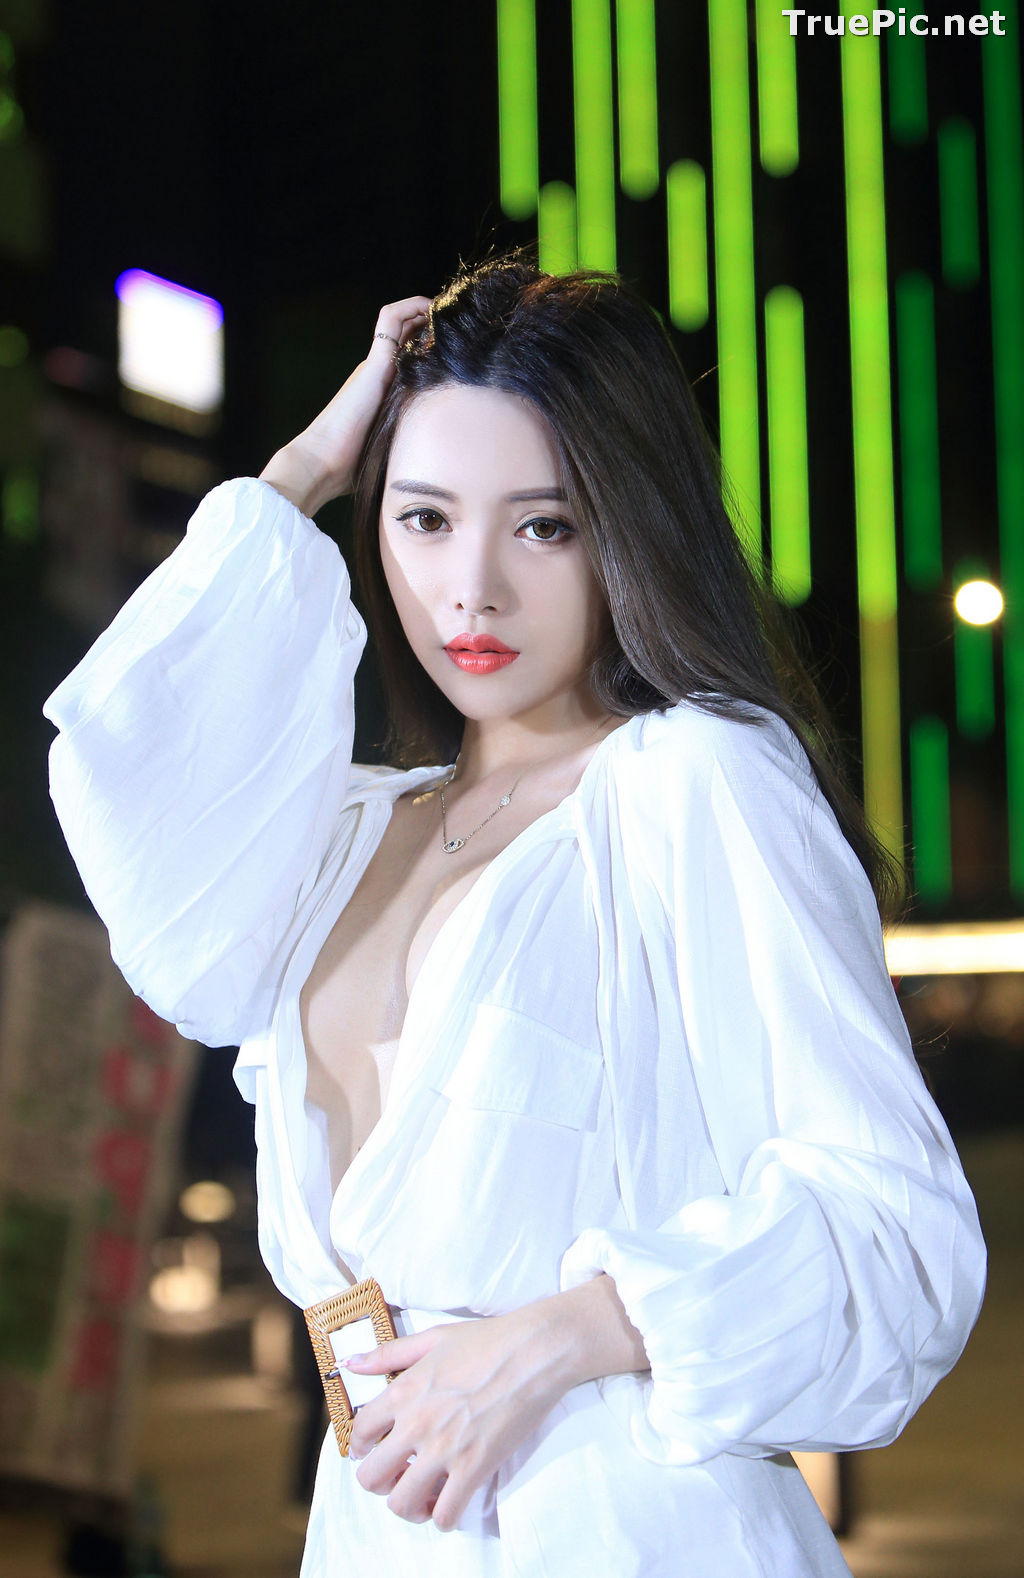 Image Taiwanese Model – 莊舒潔 (ViVi) – Sexy and Pure Baby In Night - TruePic.net - Picture-41